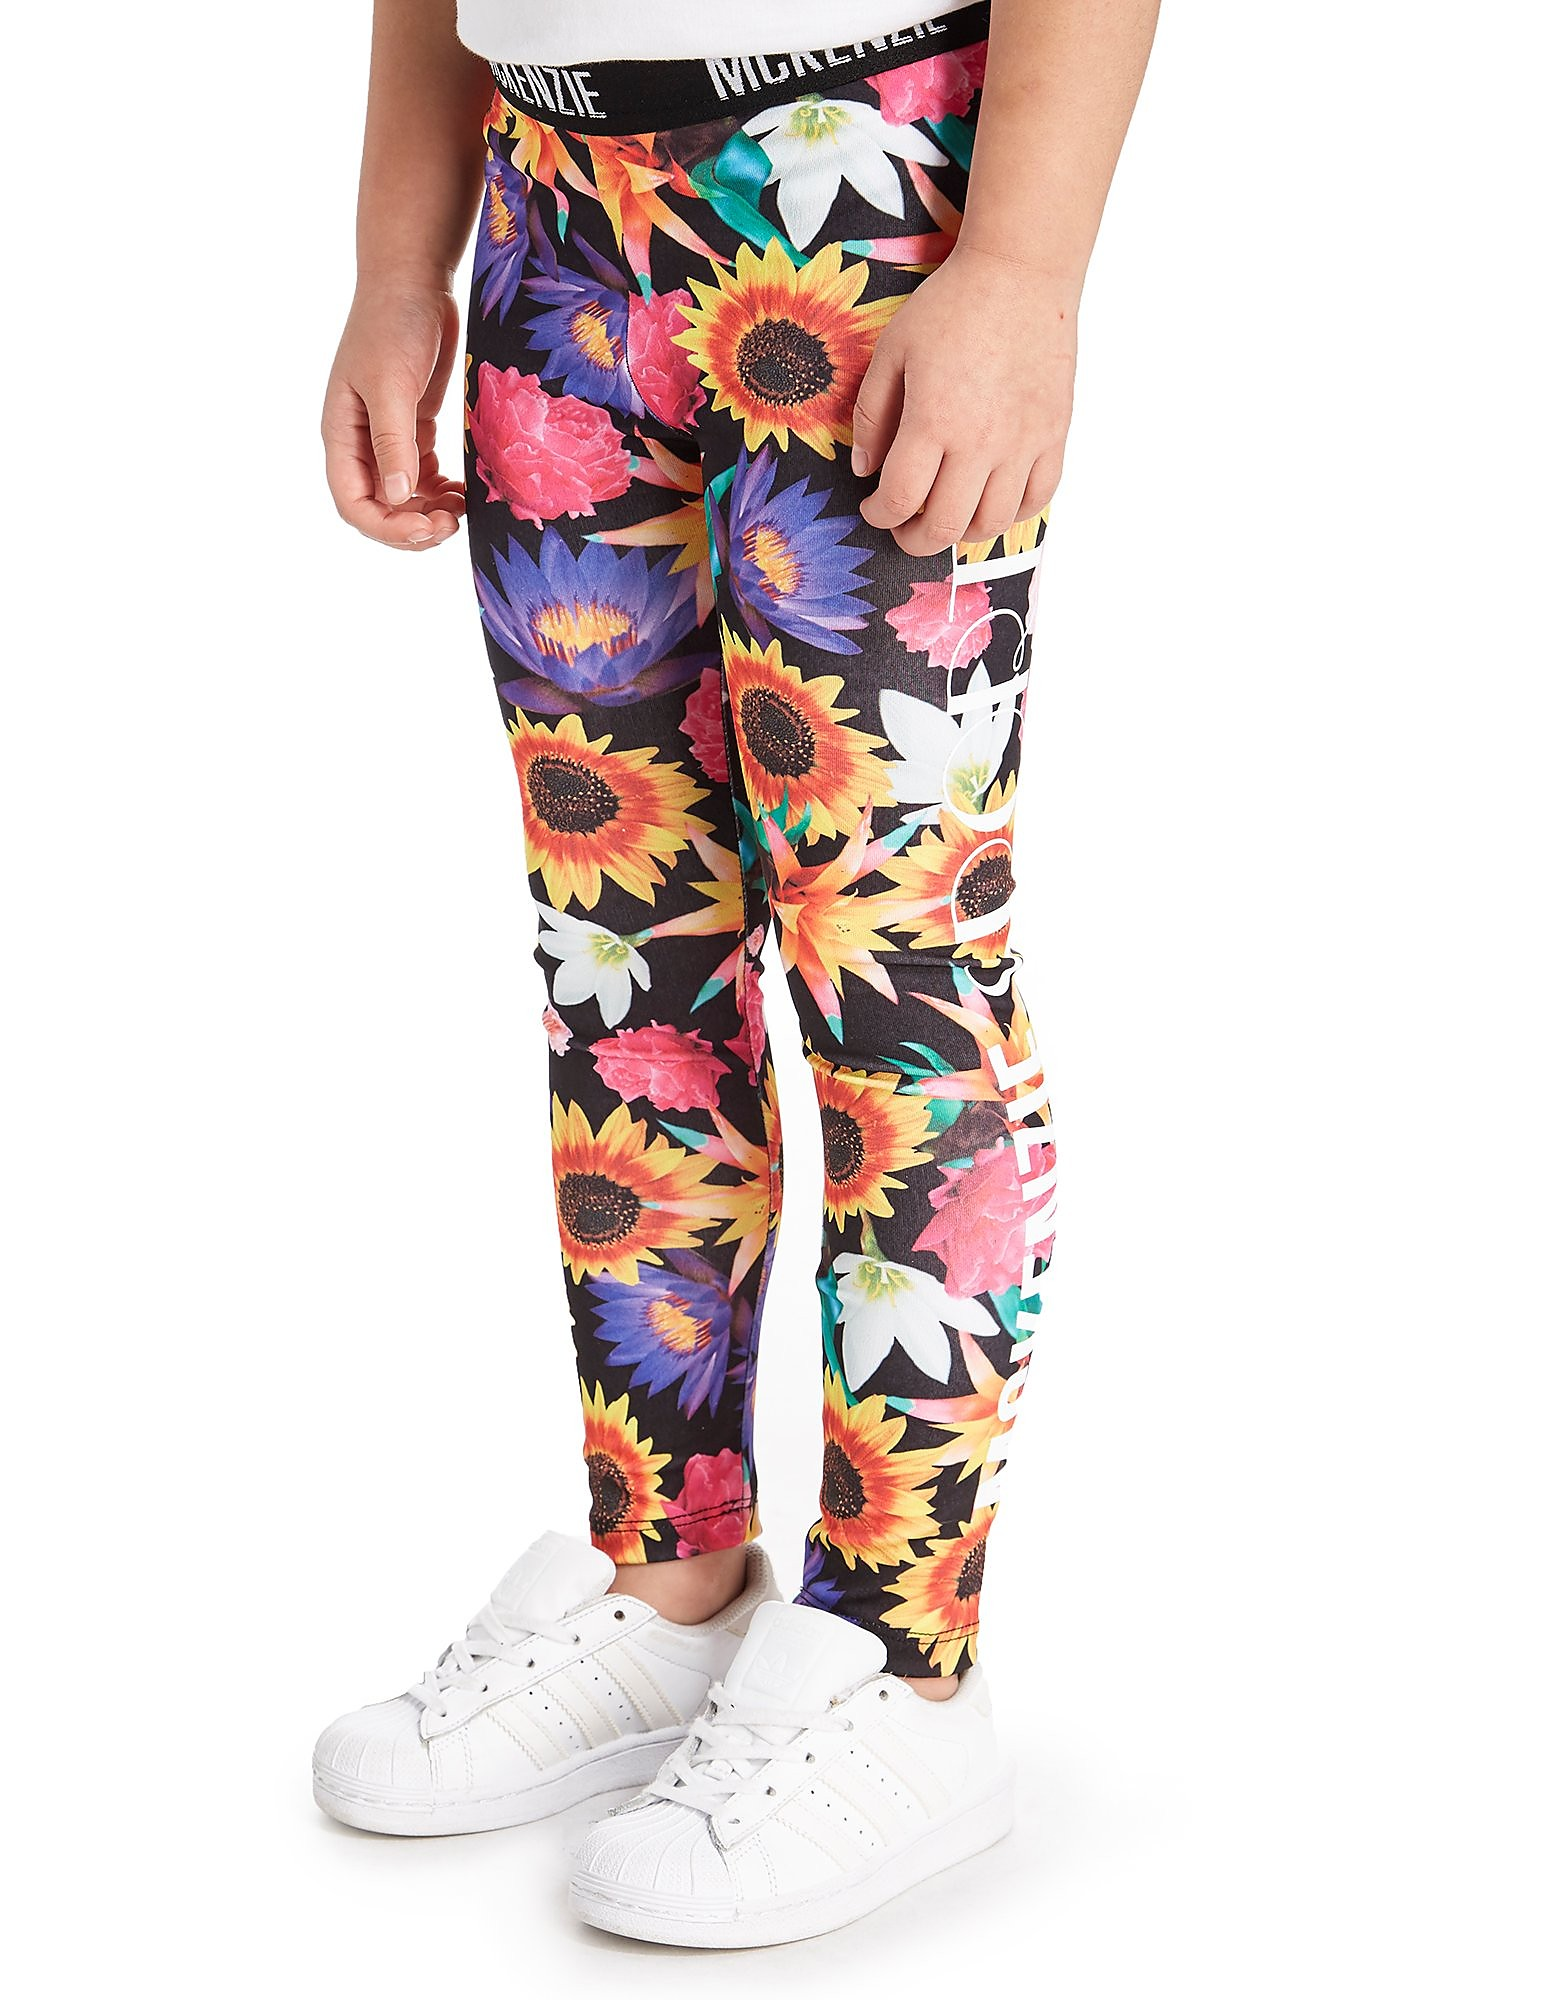 McKenzie Girls' Lilly Leggings Children